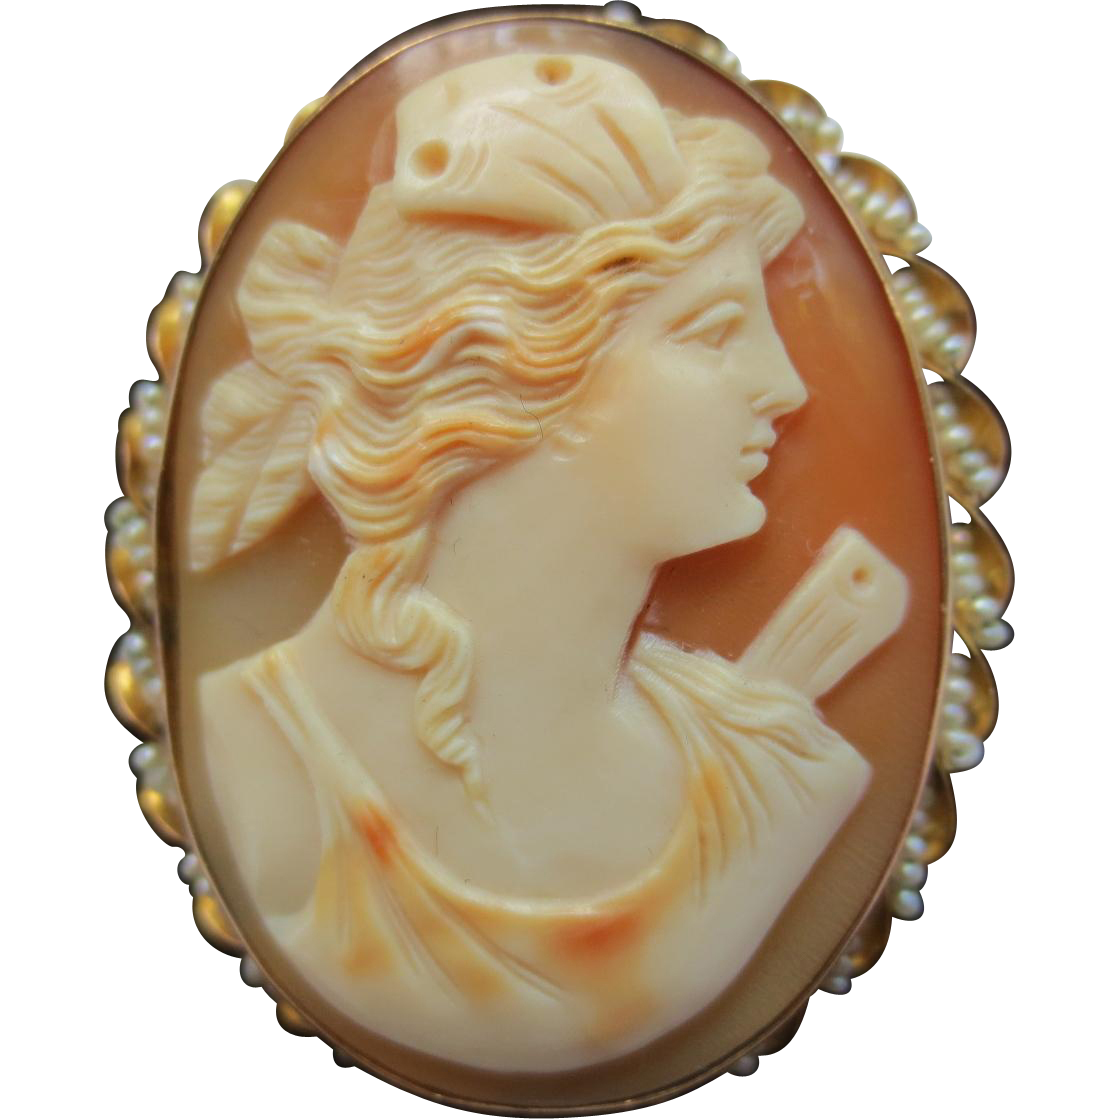 Antique 10k Gold & Seed Pearl Cameo Pendant Brooch of Goddess